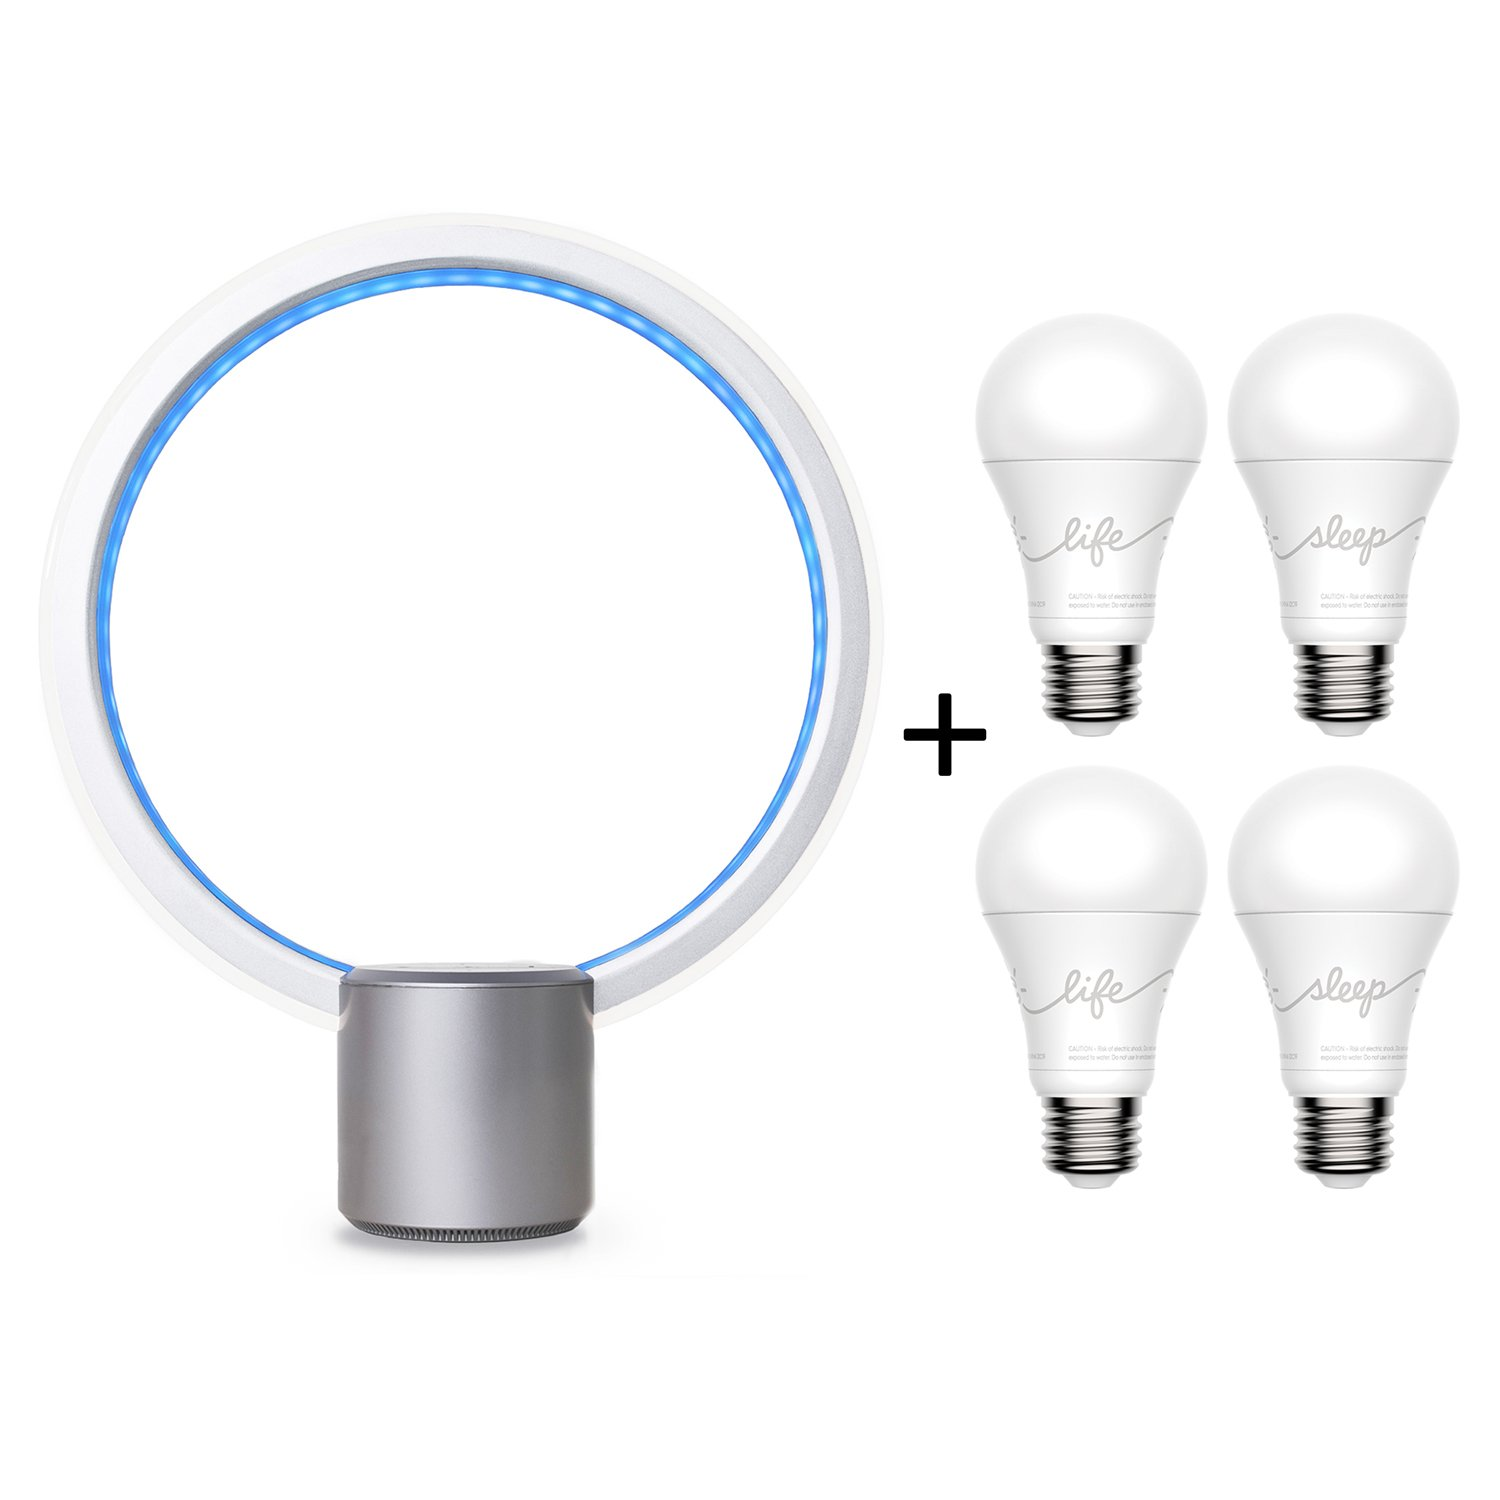 C by GE Sol + C-Sleep + C-Life Starter Kit (Smart LED Light Fixture and 2 C-Sleep + 2 C-Life Smart LED Light Bulbs) by GE Lighting, works with Amazon Alexa